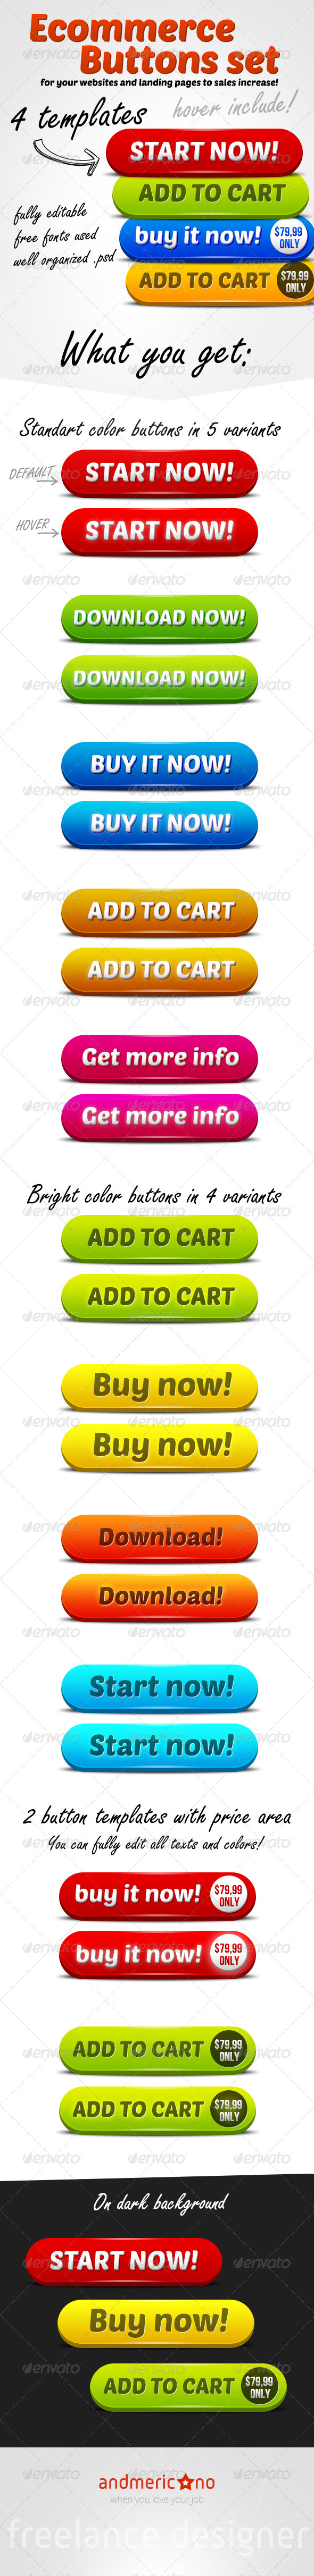 Ecommerce Big Buttons Set - Buttons Web Elements